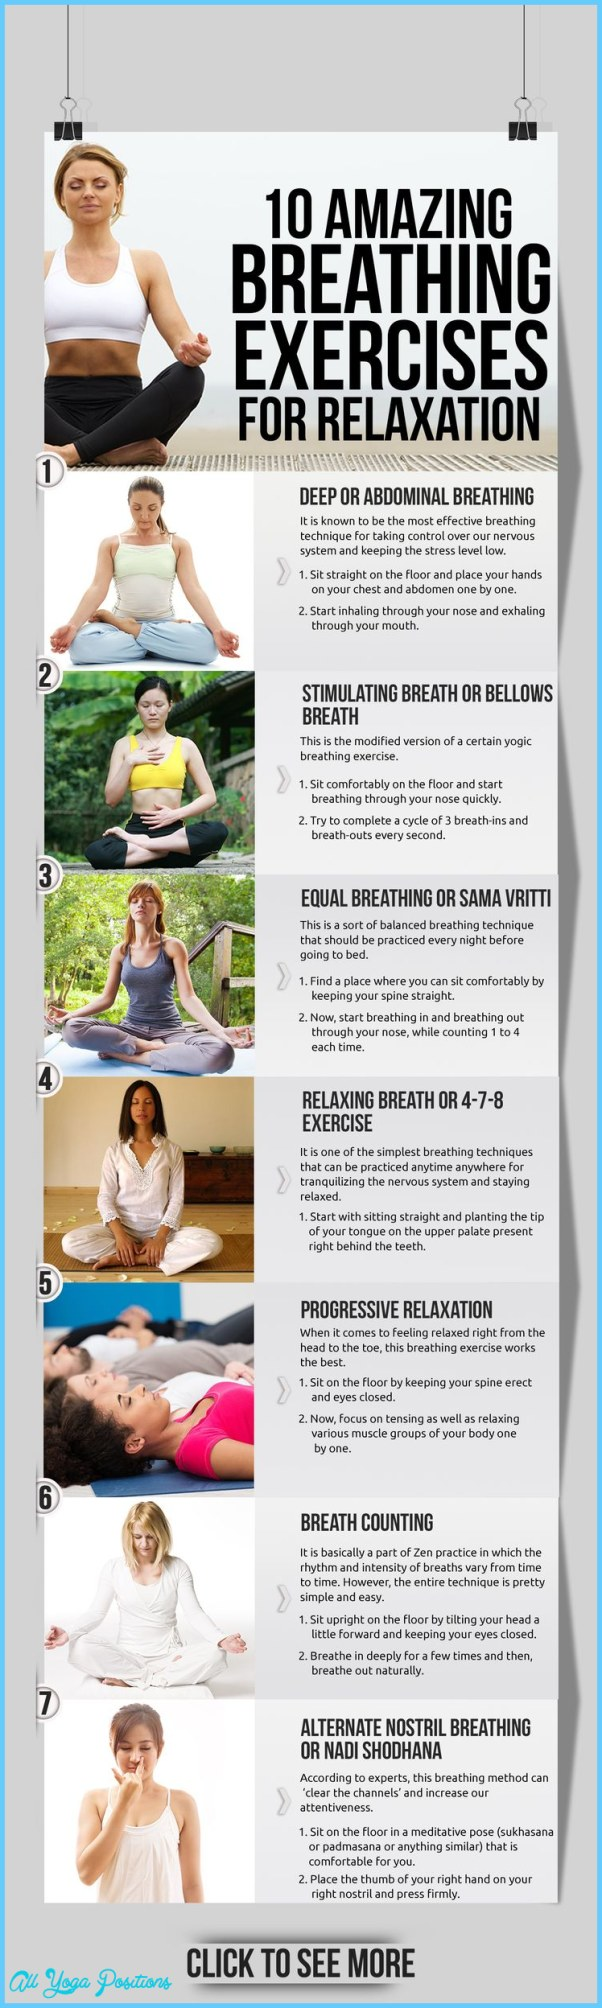 yoga breathing exercises for stress all yoga positions. Black Bedroom Furniture Sets. Home Design Ideas